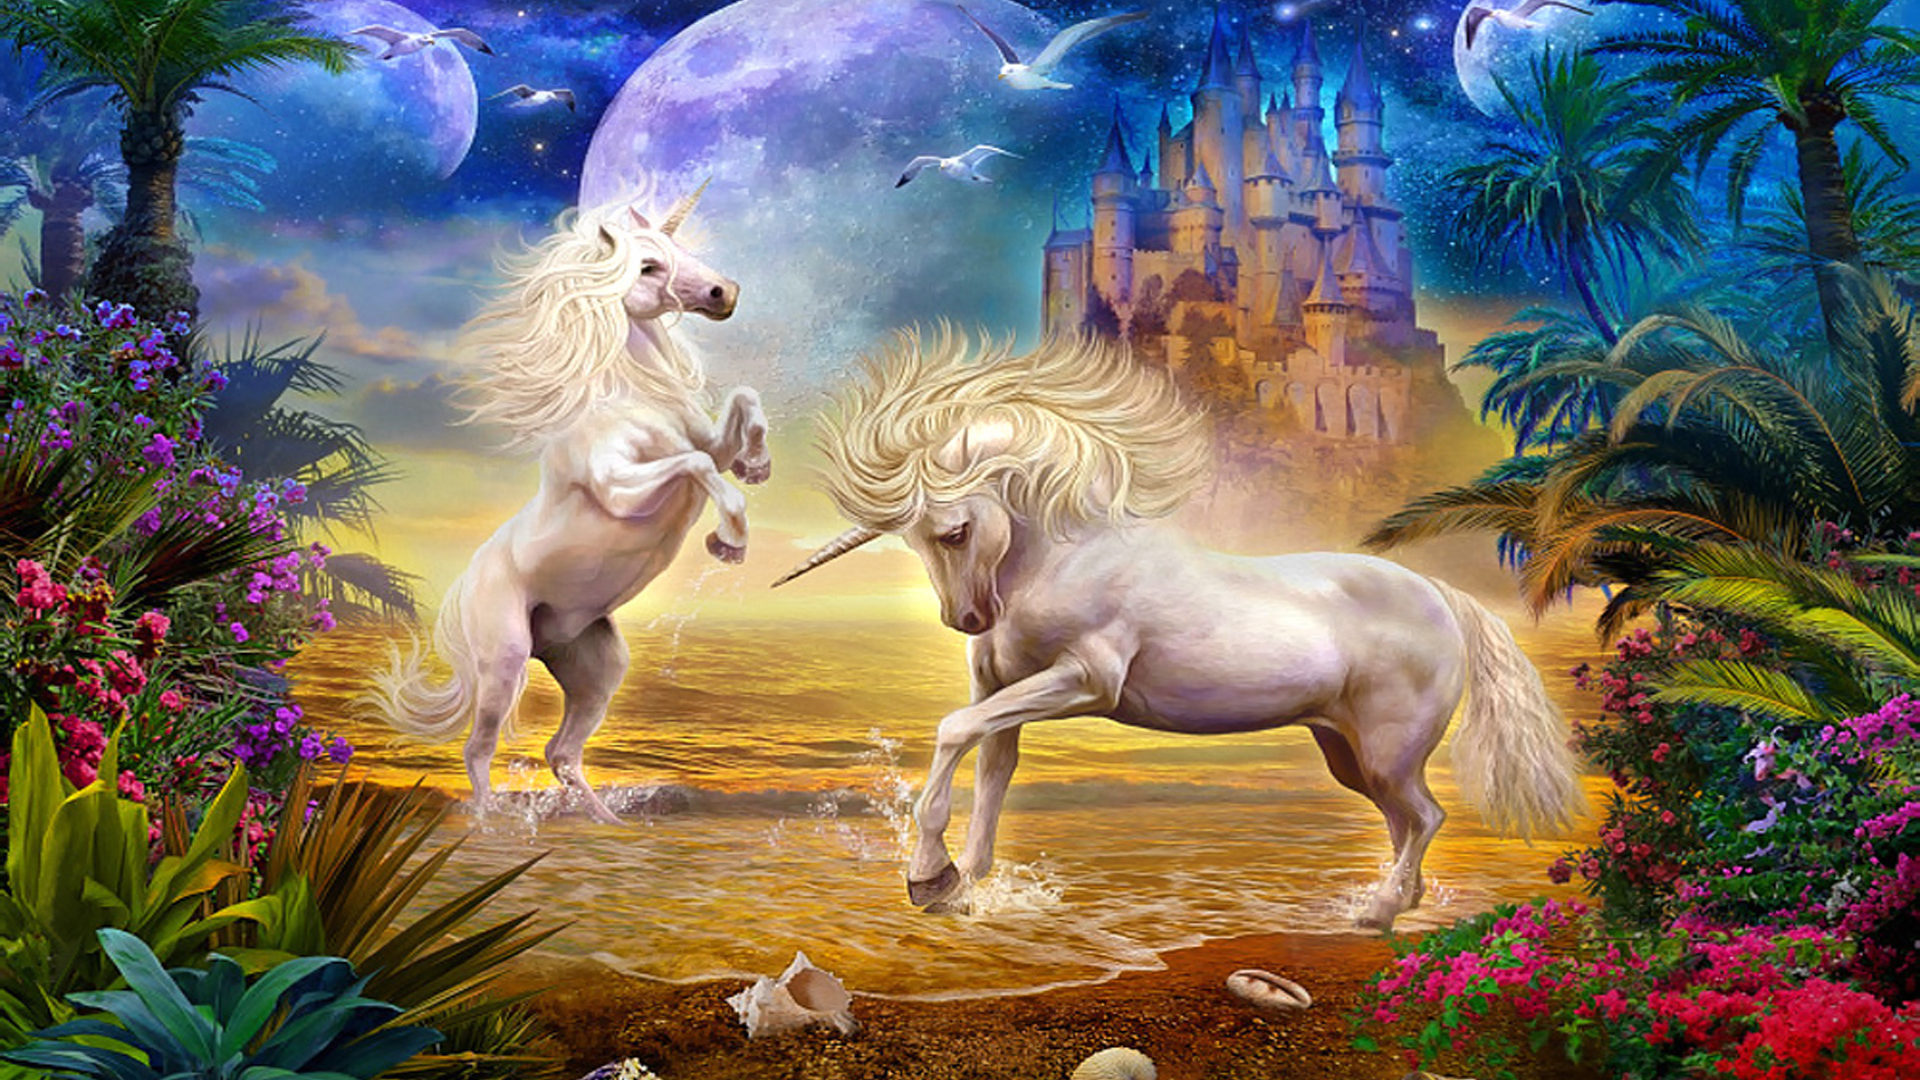 Magic Unicorns Myths And Legends Fantasy Hd Wallpaper